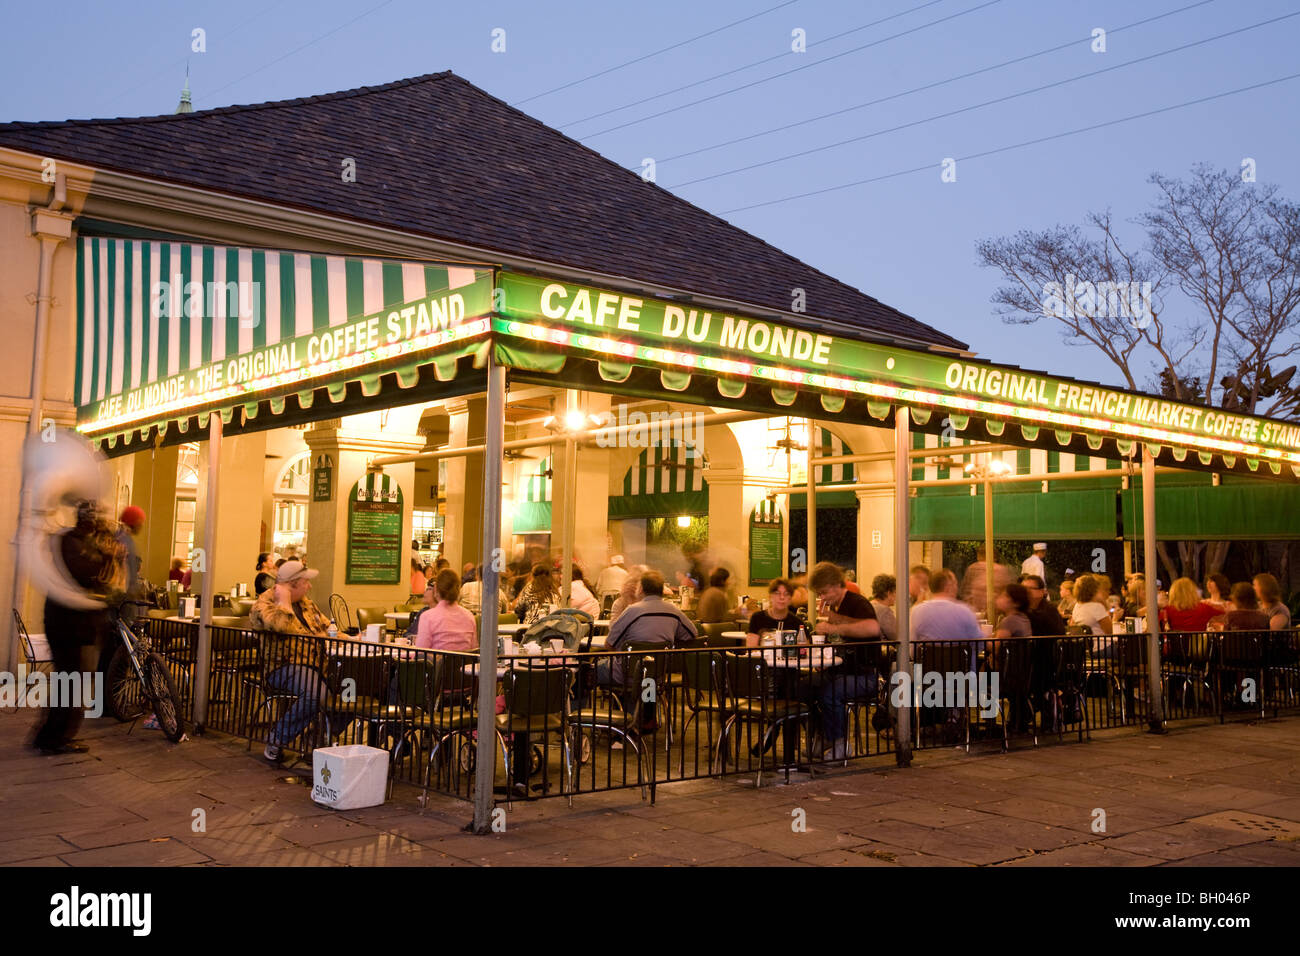 Where To Buy Cafe Du Monde Coffee